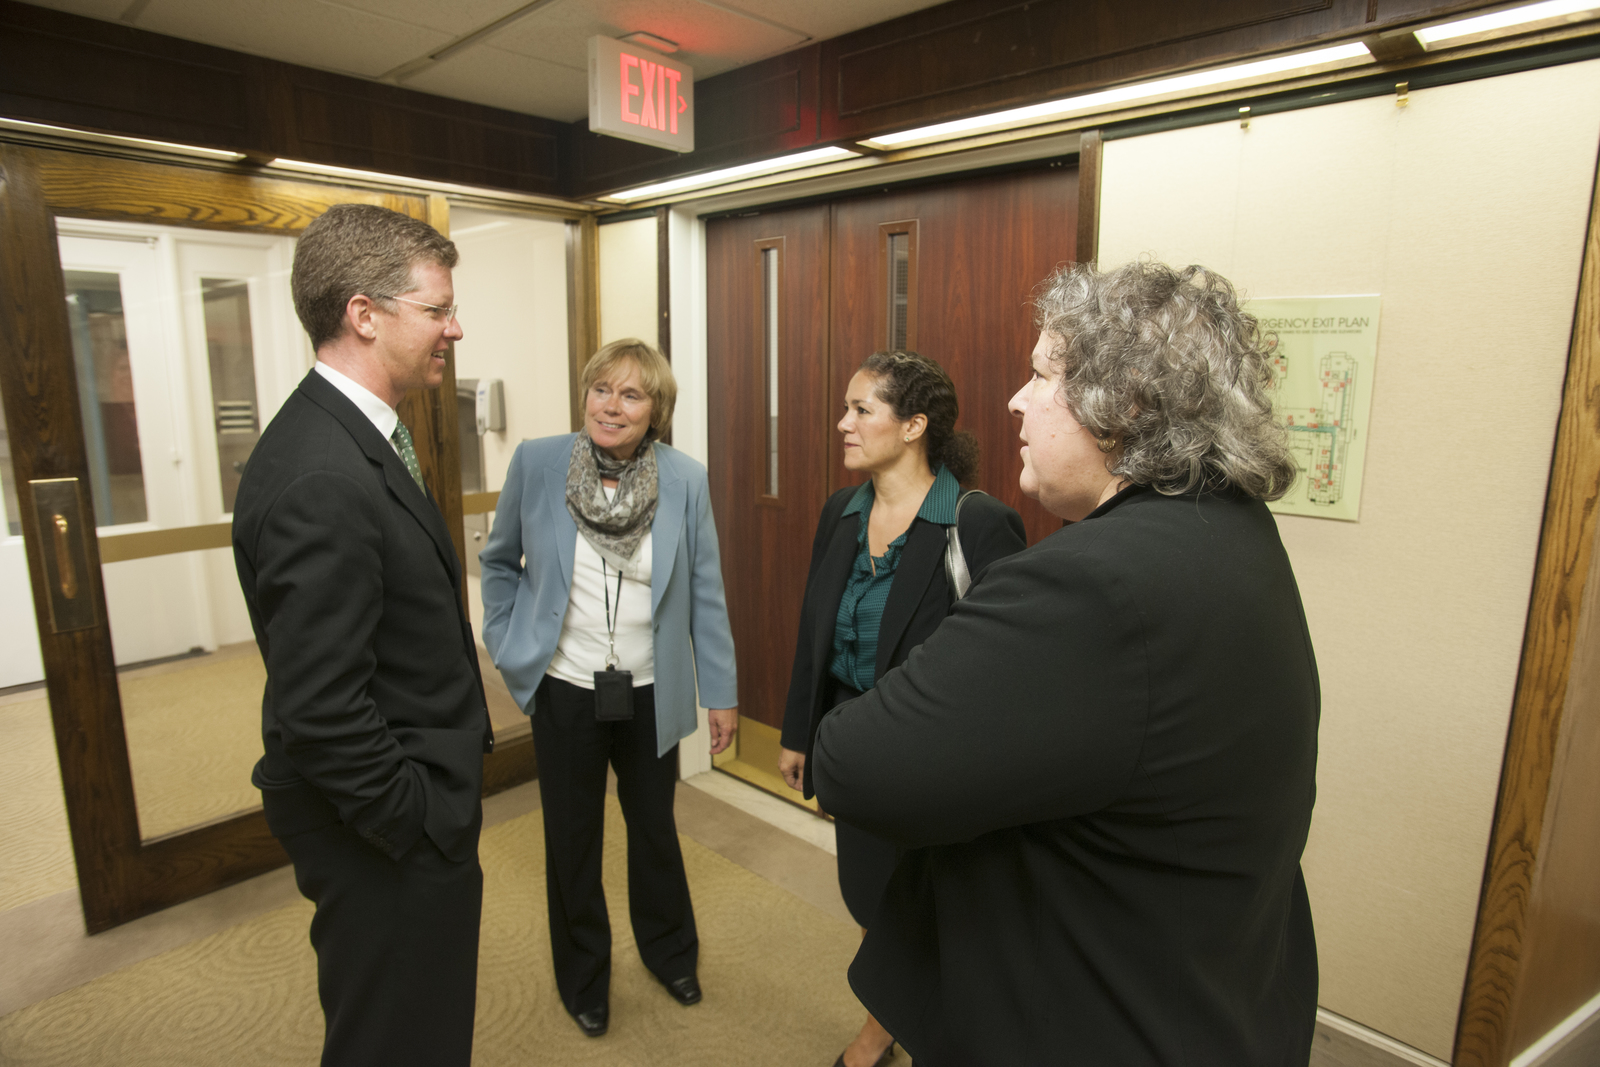 """Secretary Shaun Donovan at Federal Reserve [headquarters, Washington, D.C.,  where he spoke at summit on """"Real Estate Owned (REO) and Vacant Property Strategies for Neighborhood Stabilization""""]"""